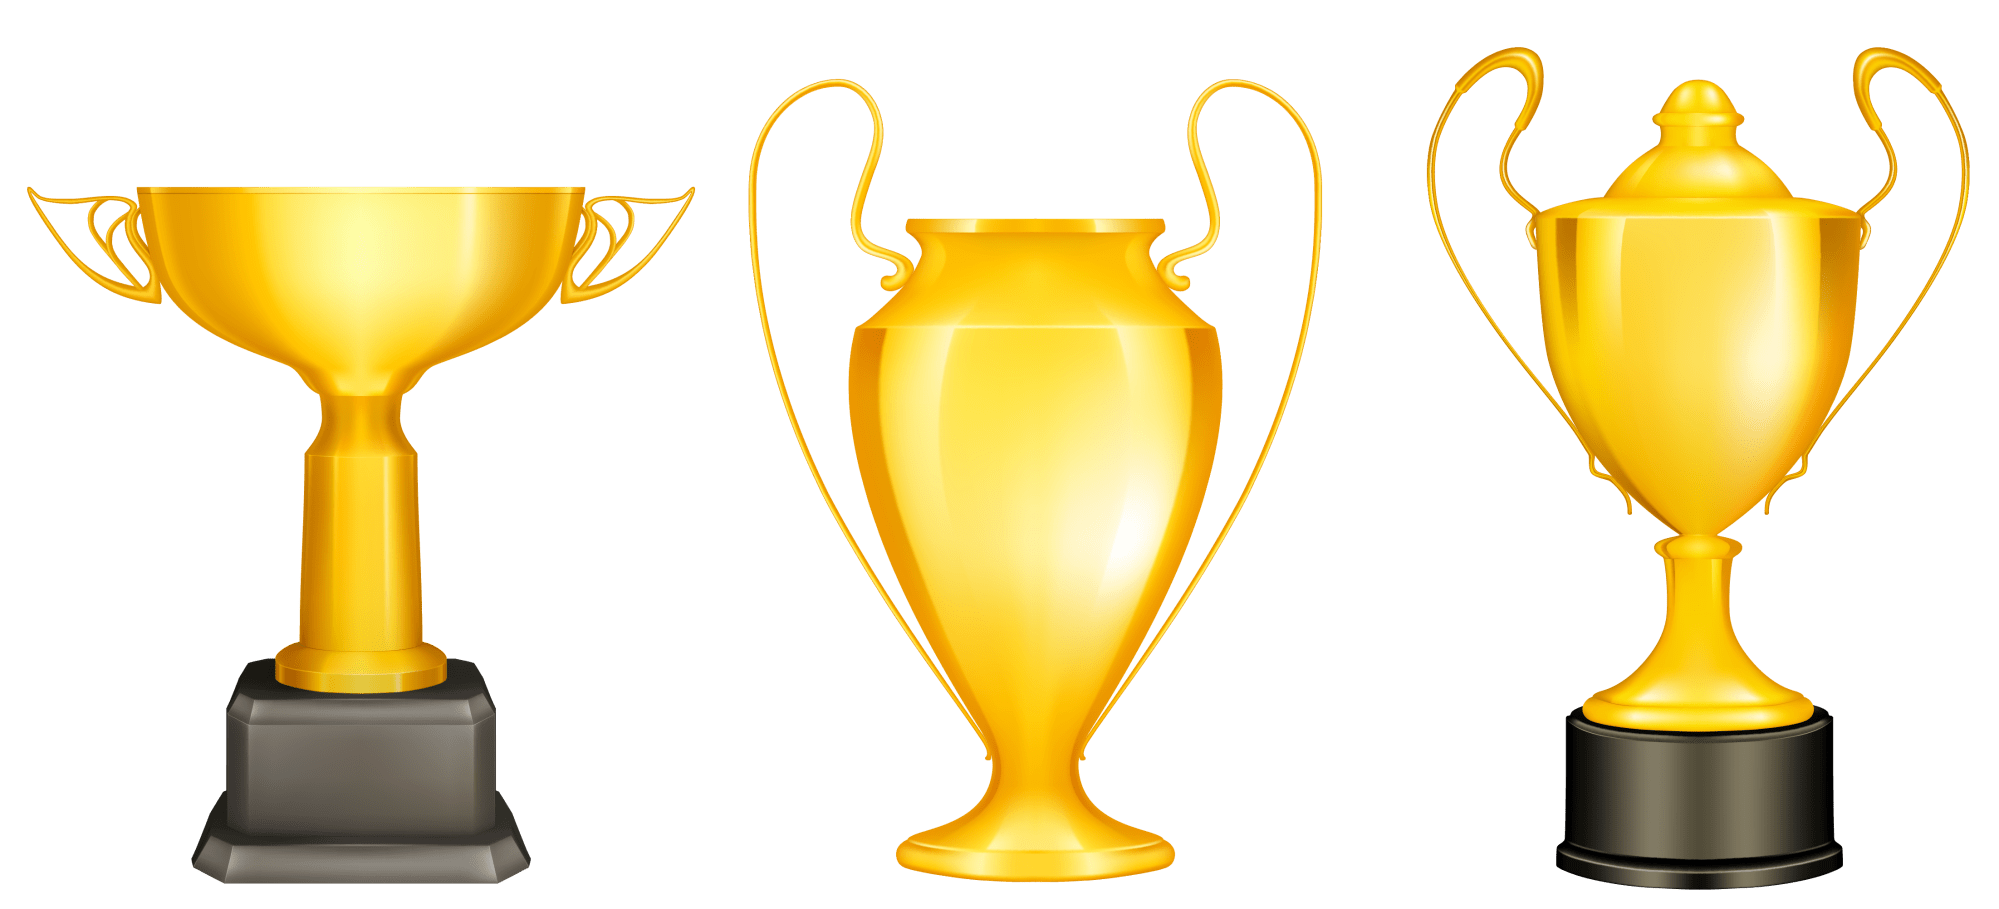 hight resolution of winning trophy clipart clear